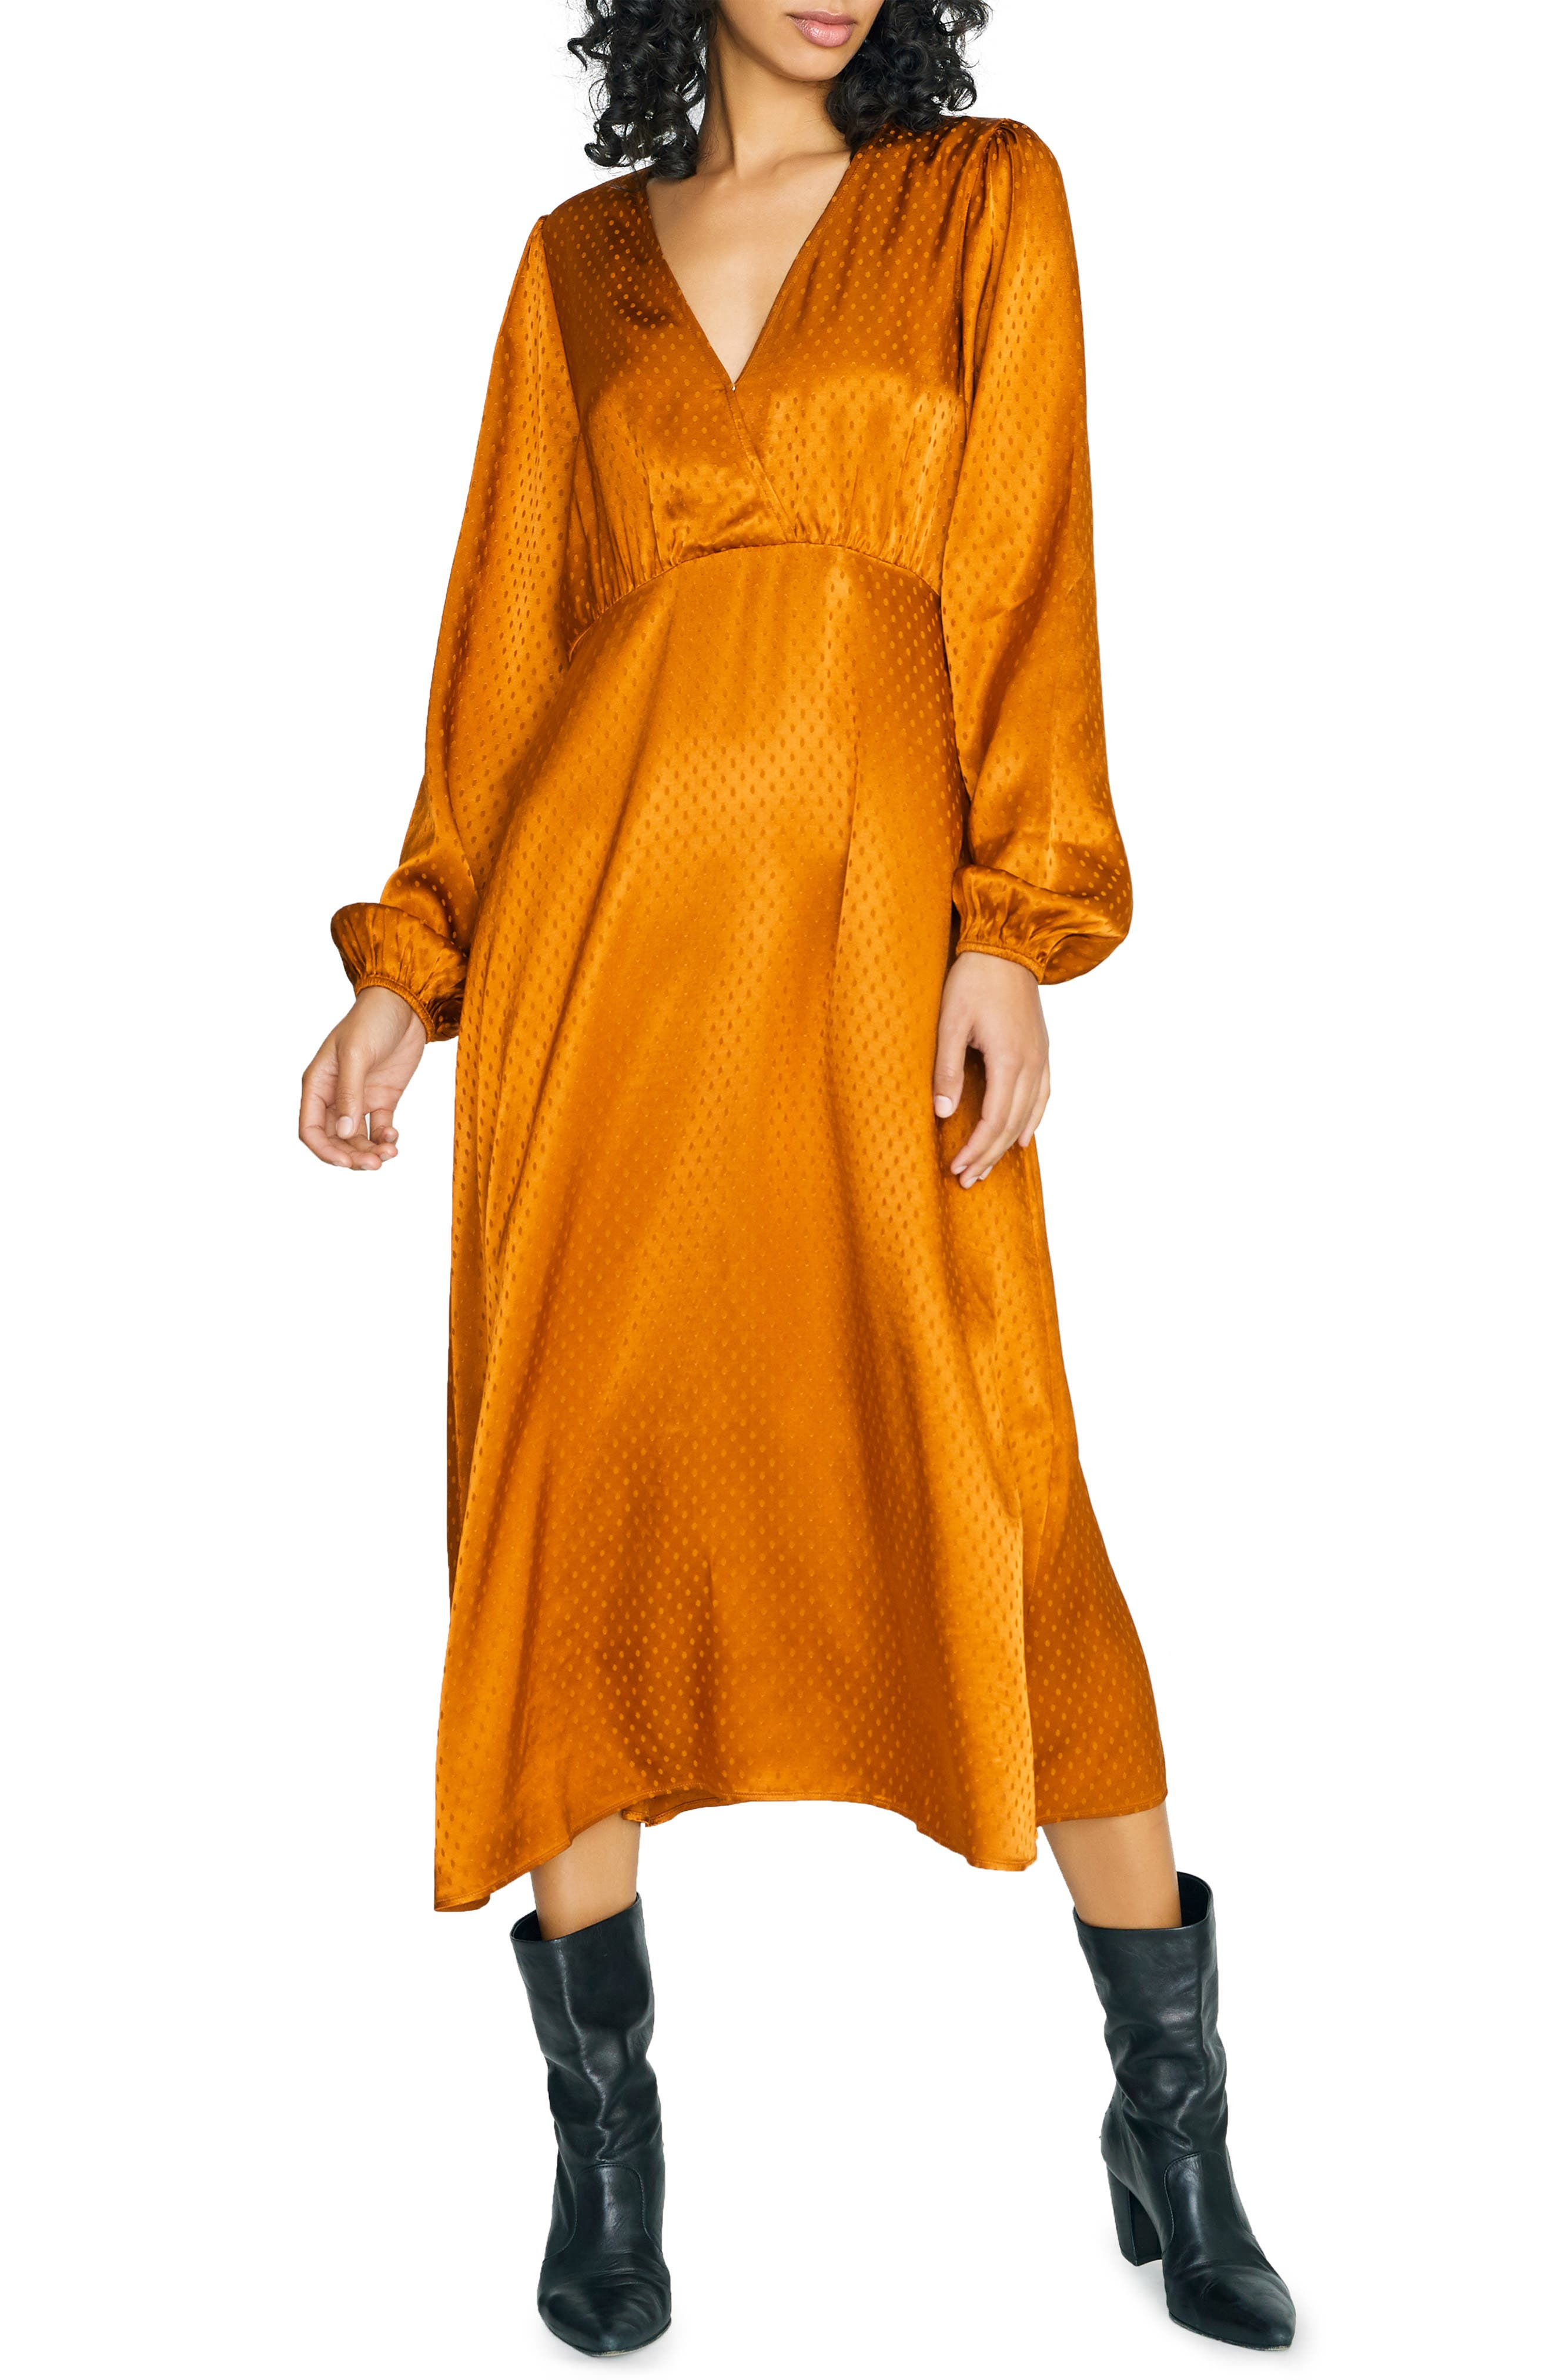 70s Prom, Formal, Evening, Party Dresses Womens Sanctuary Earth Bound Textured Dot Long Sleeve Midi Dress $149.00 AT vintagedancer.com